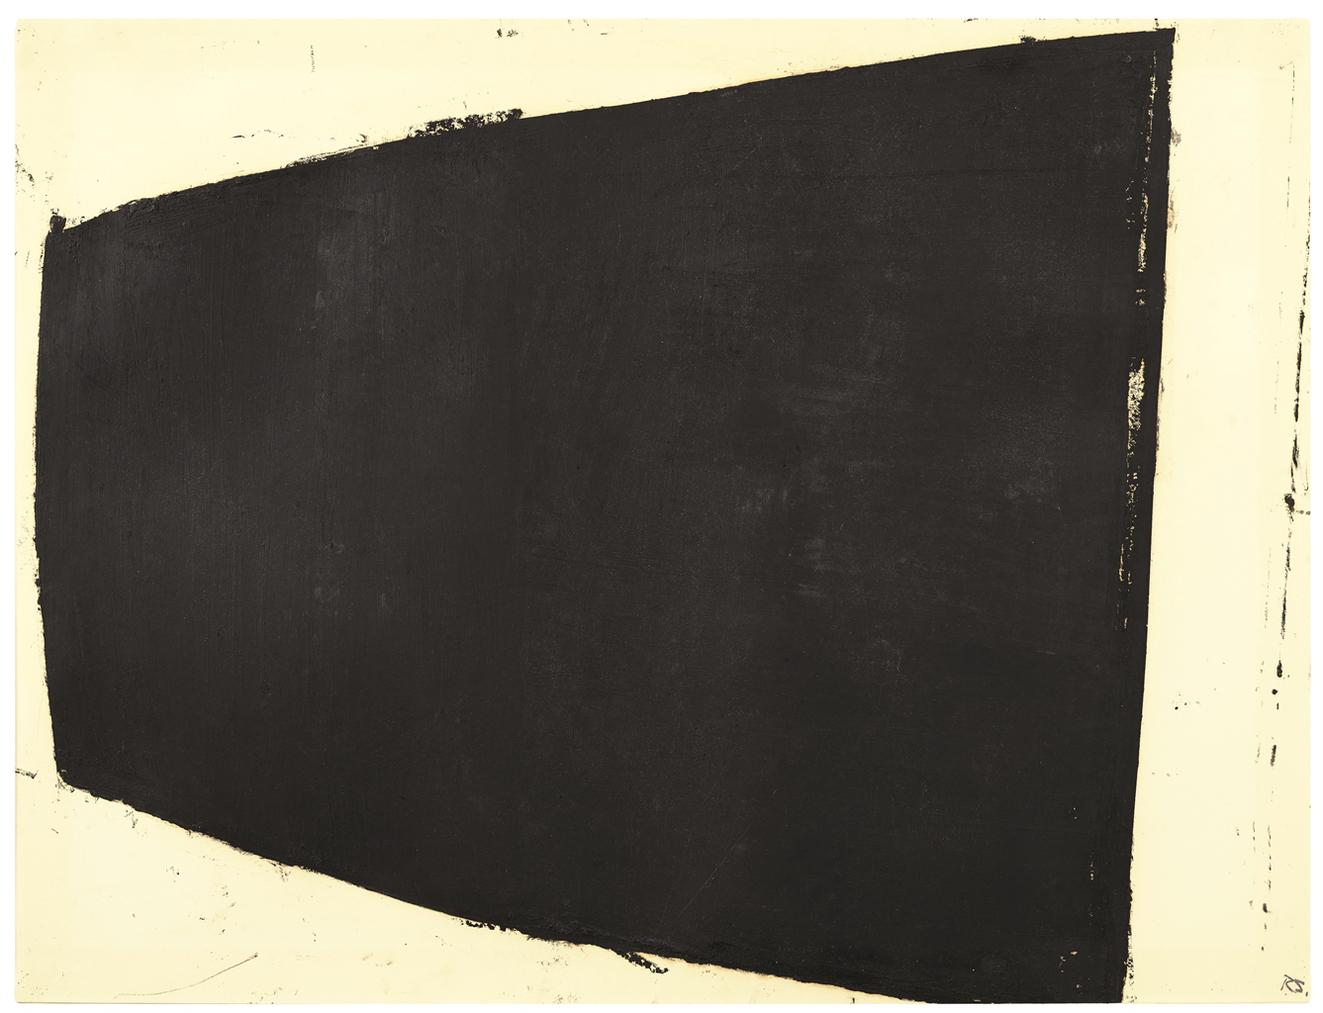 Richard Serra-Curve 2-1981